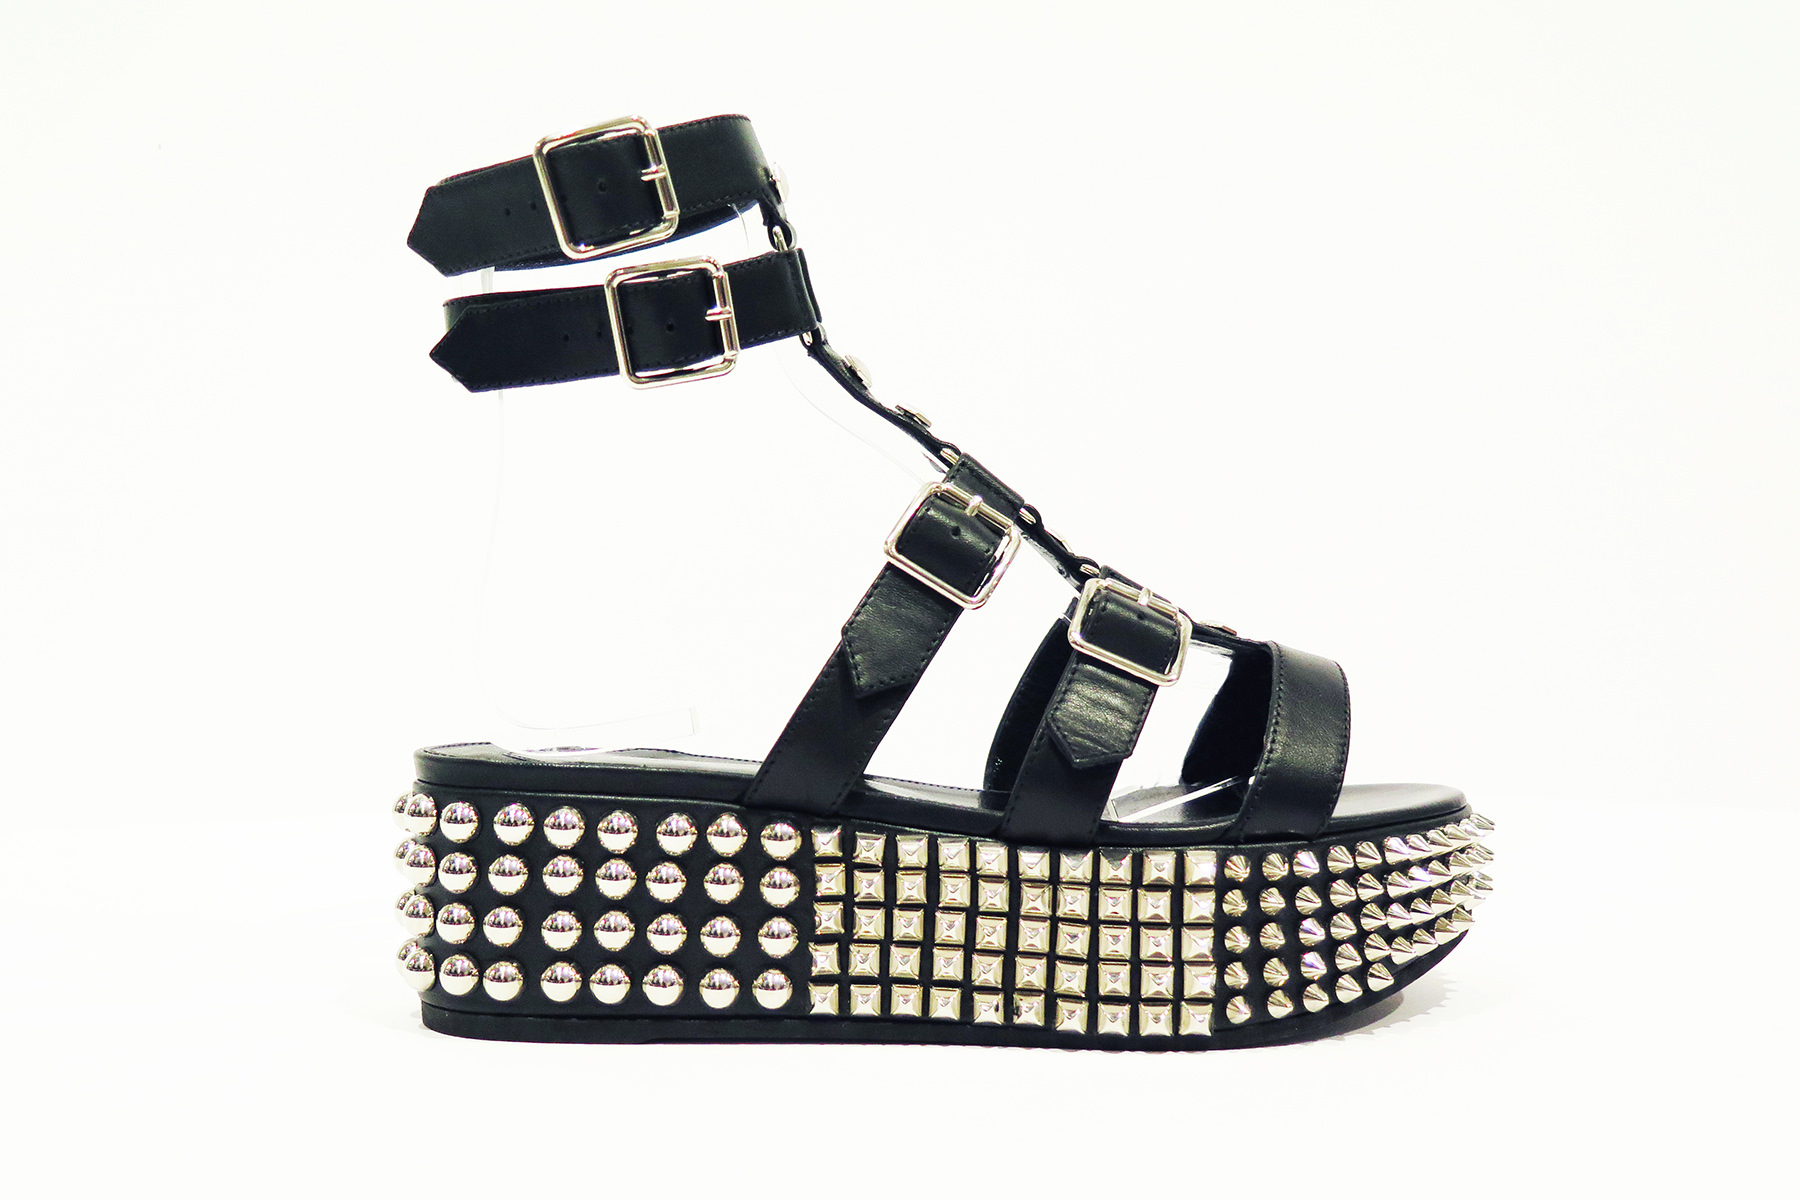 """Eternal"" leather and metal platform sandal, PHILIPP PLEIN.     Selection by Rebecca Bleynie"